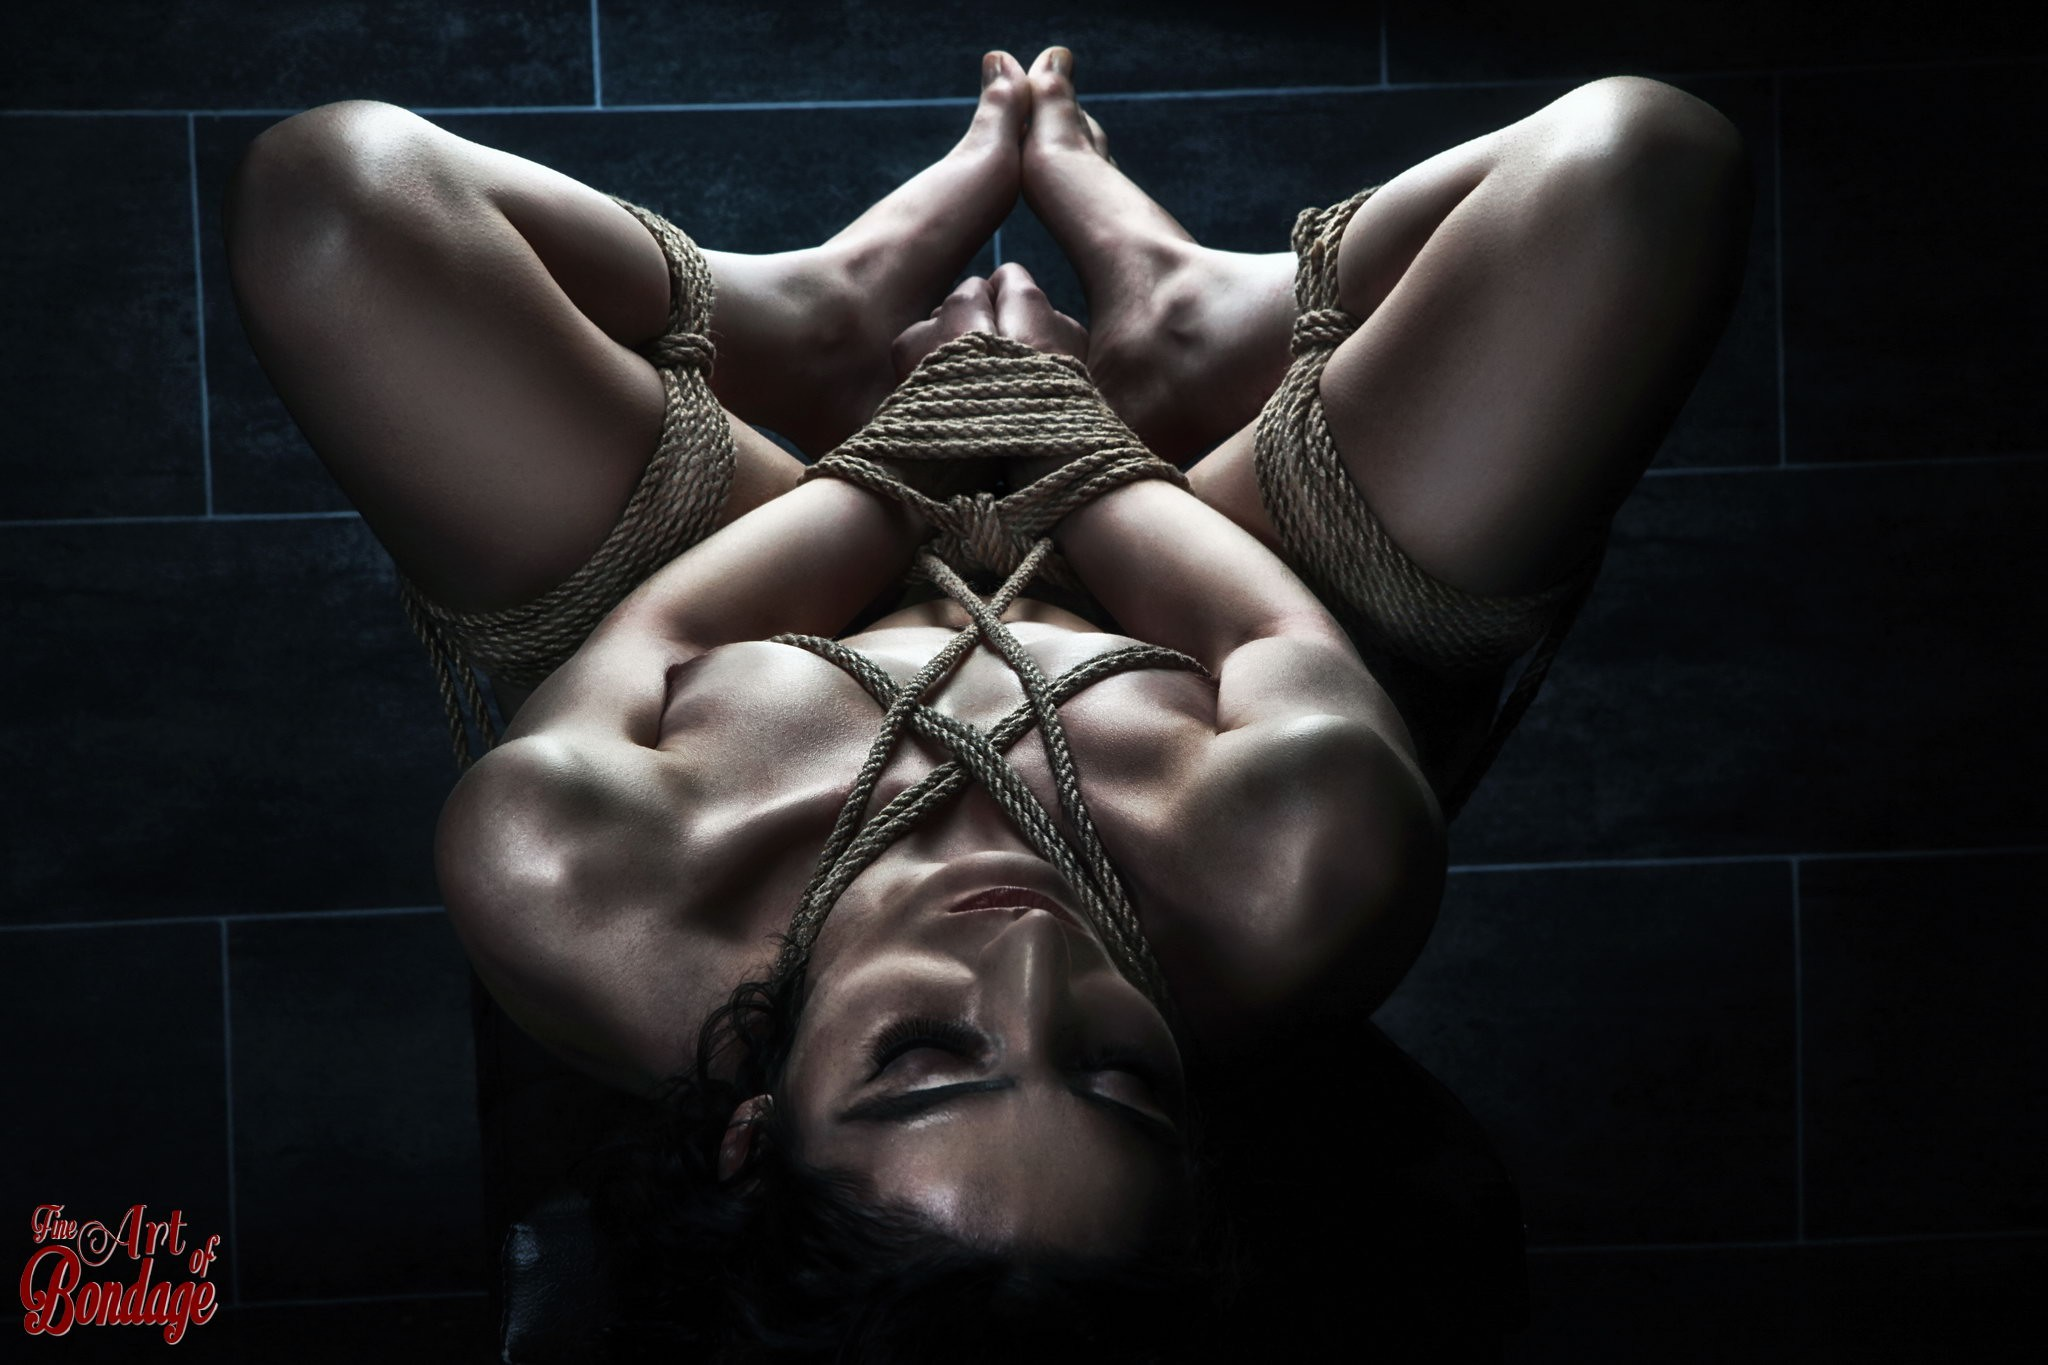 Free bondage erotic photos — photo 10